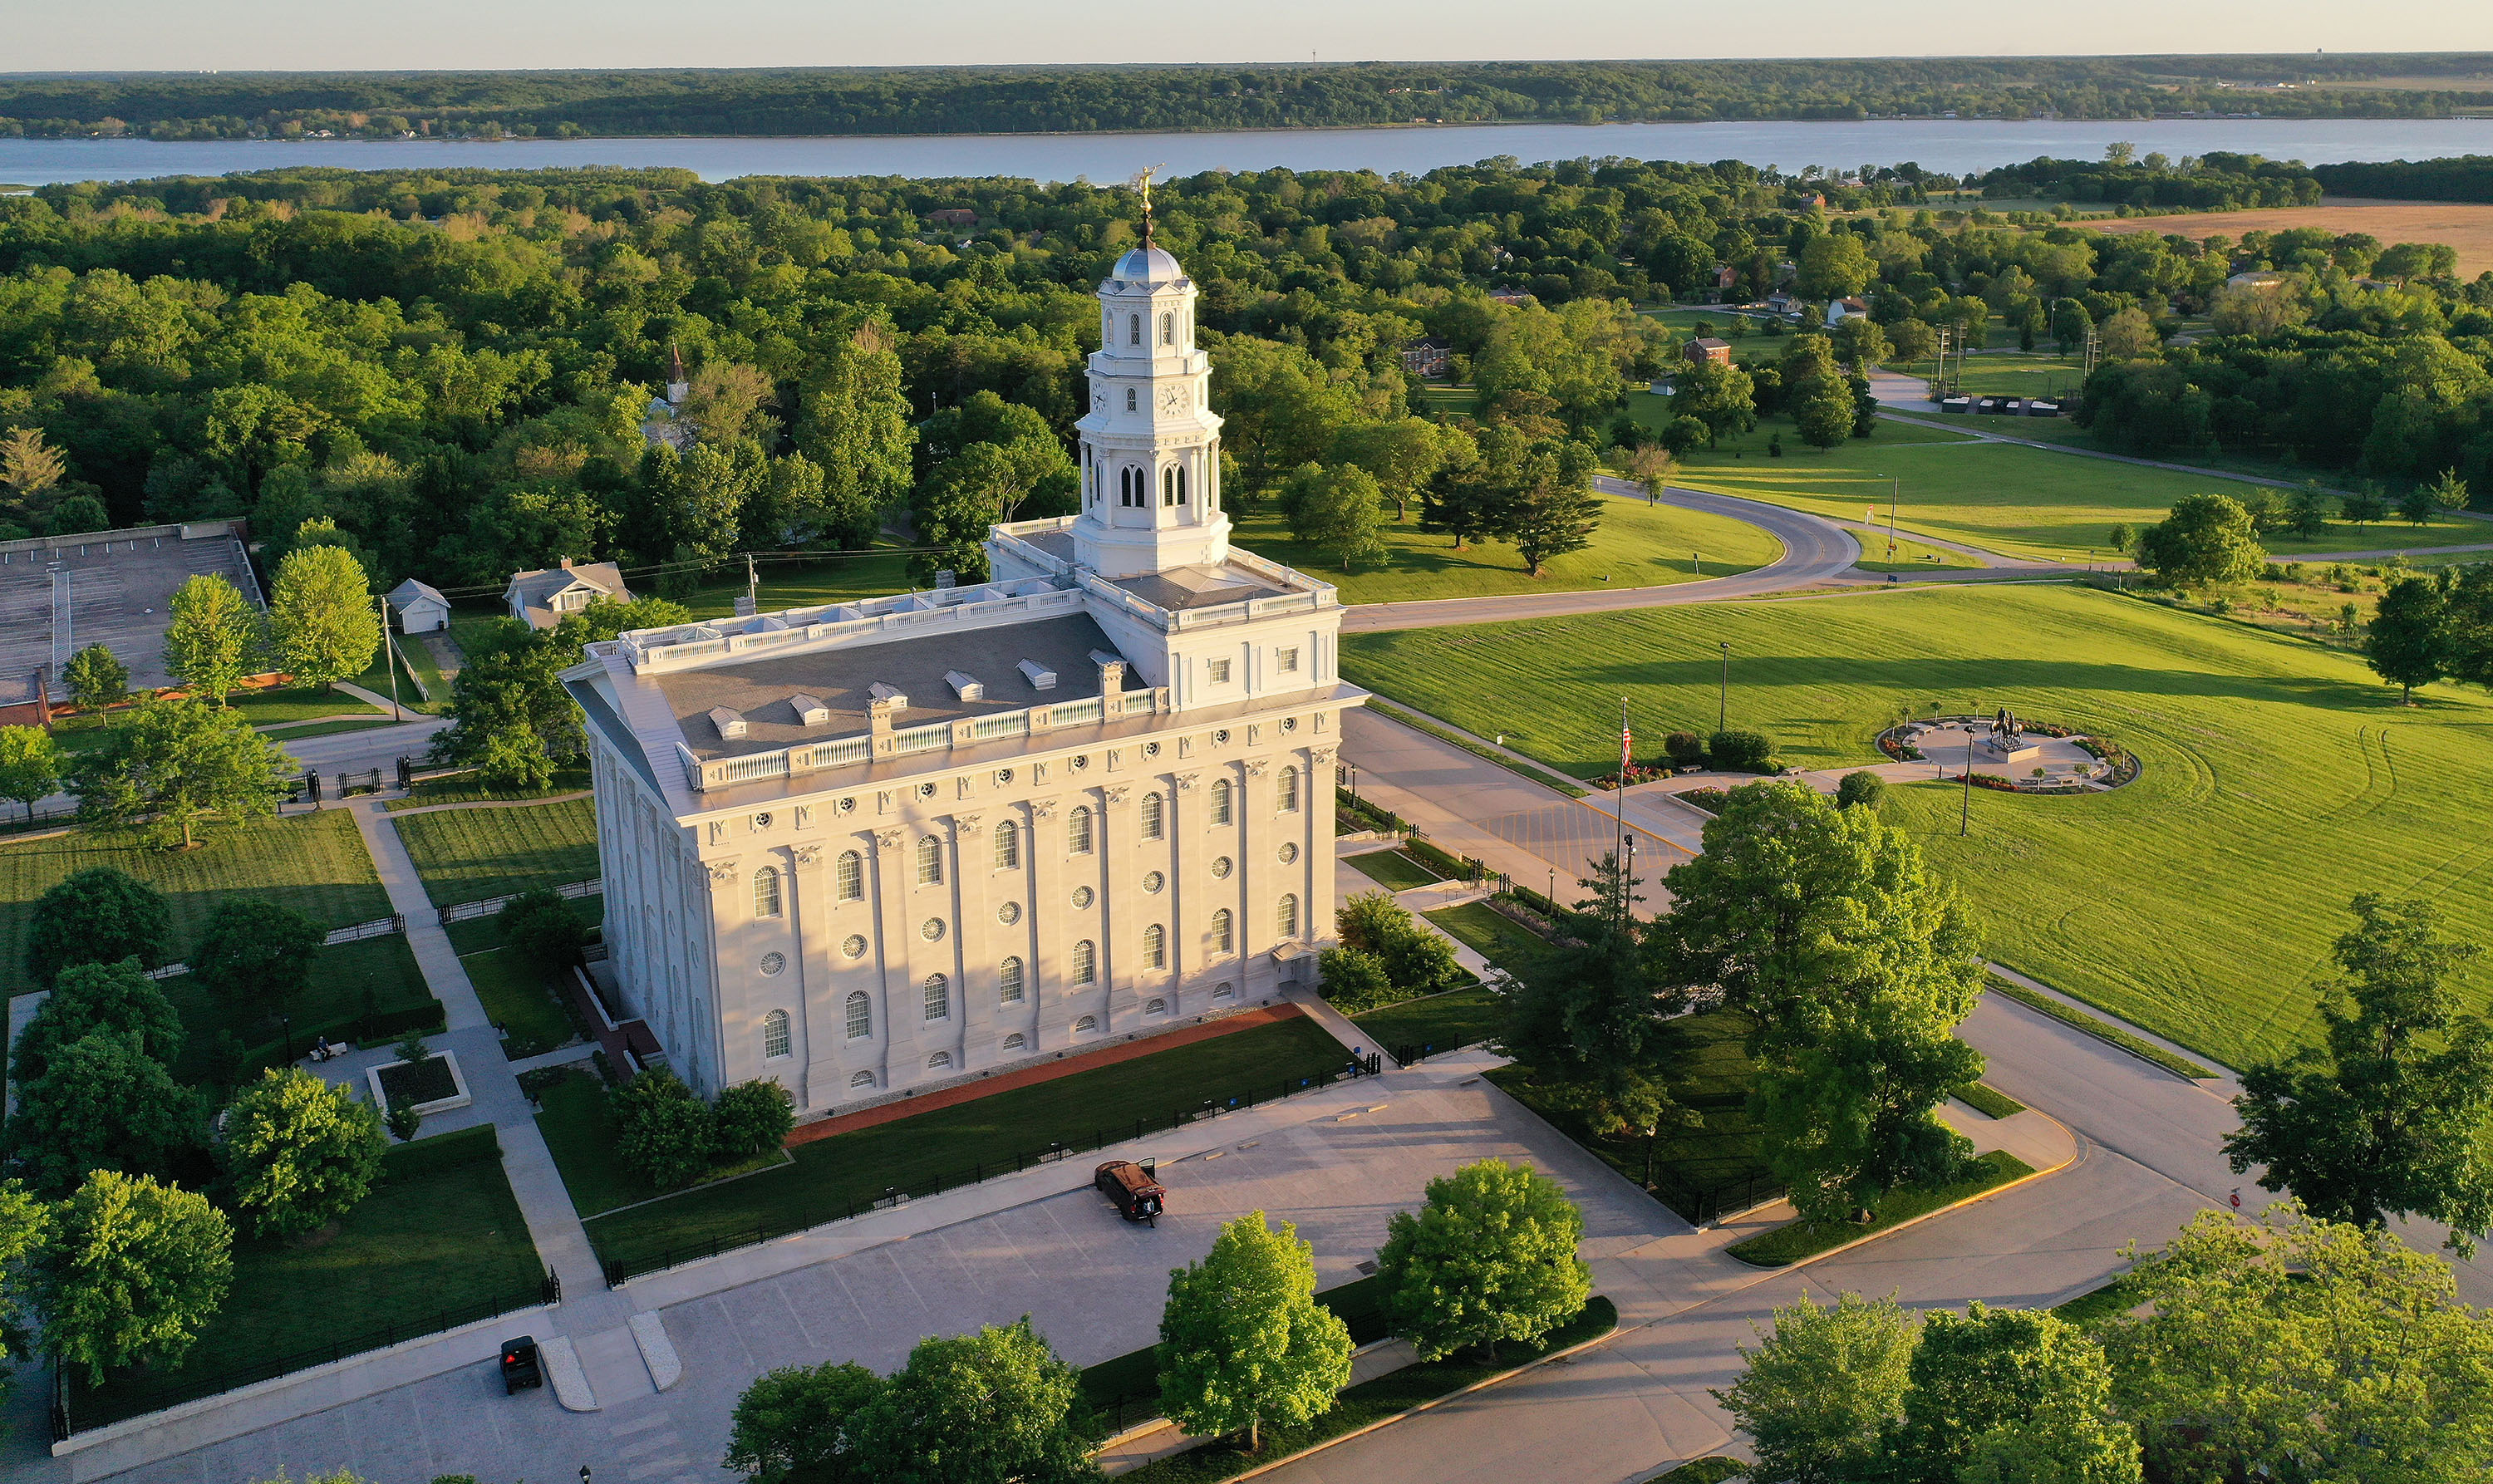 An aerial view of the Nauvoo Illinois Temple.